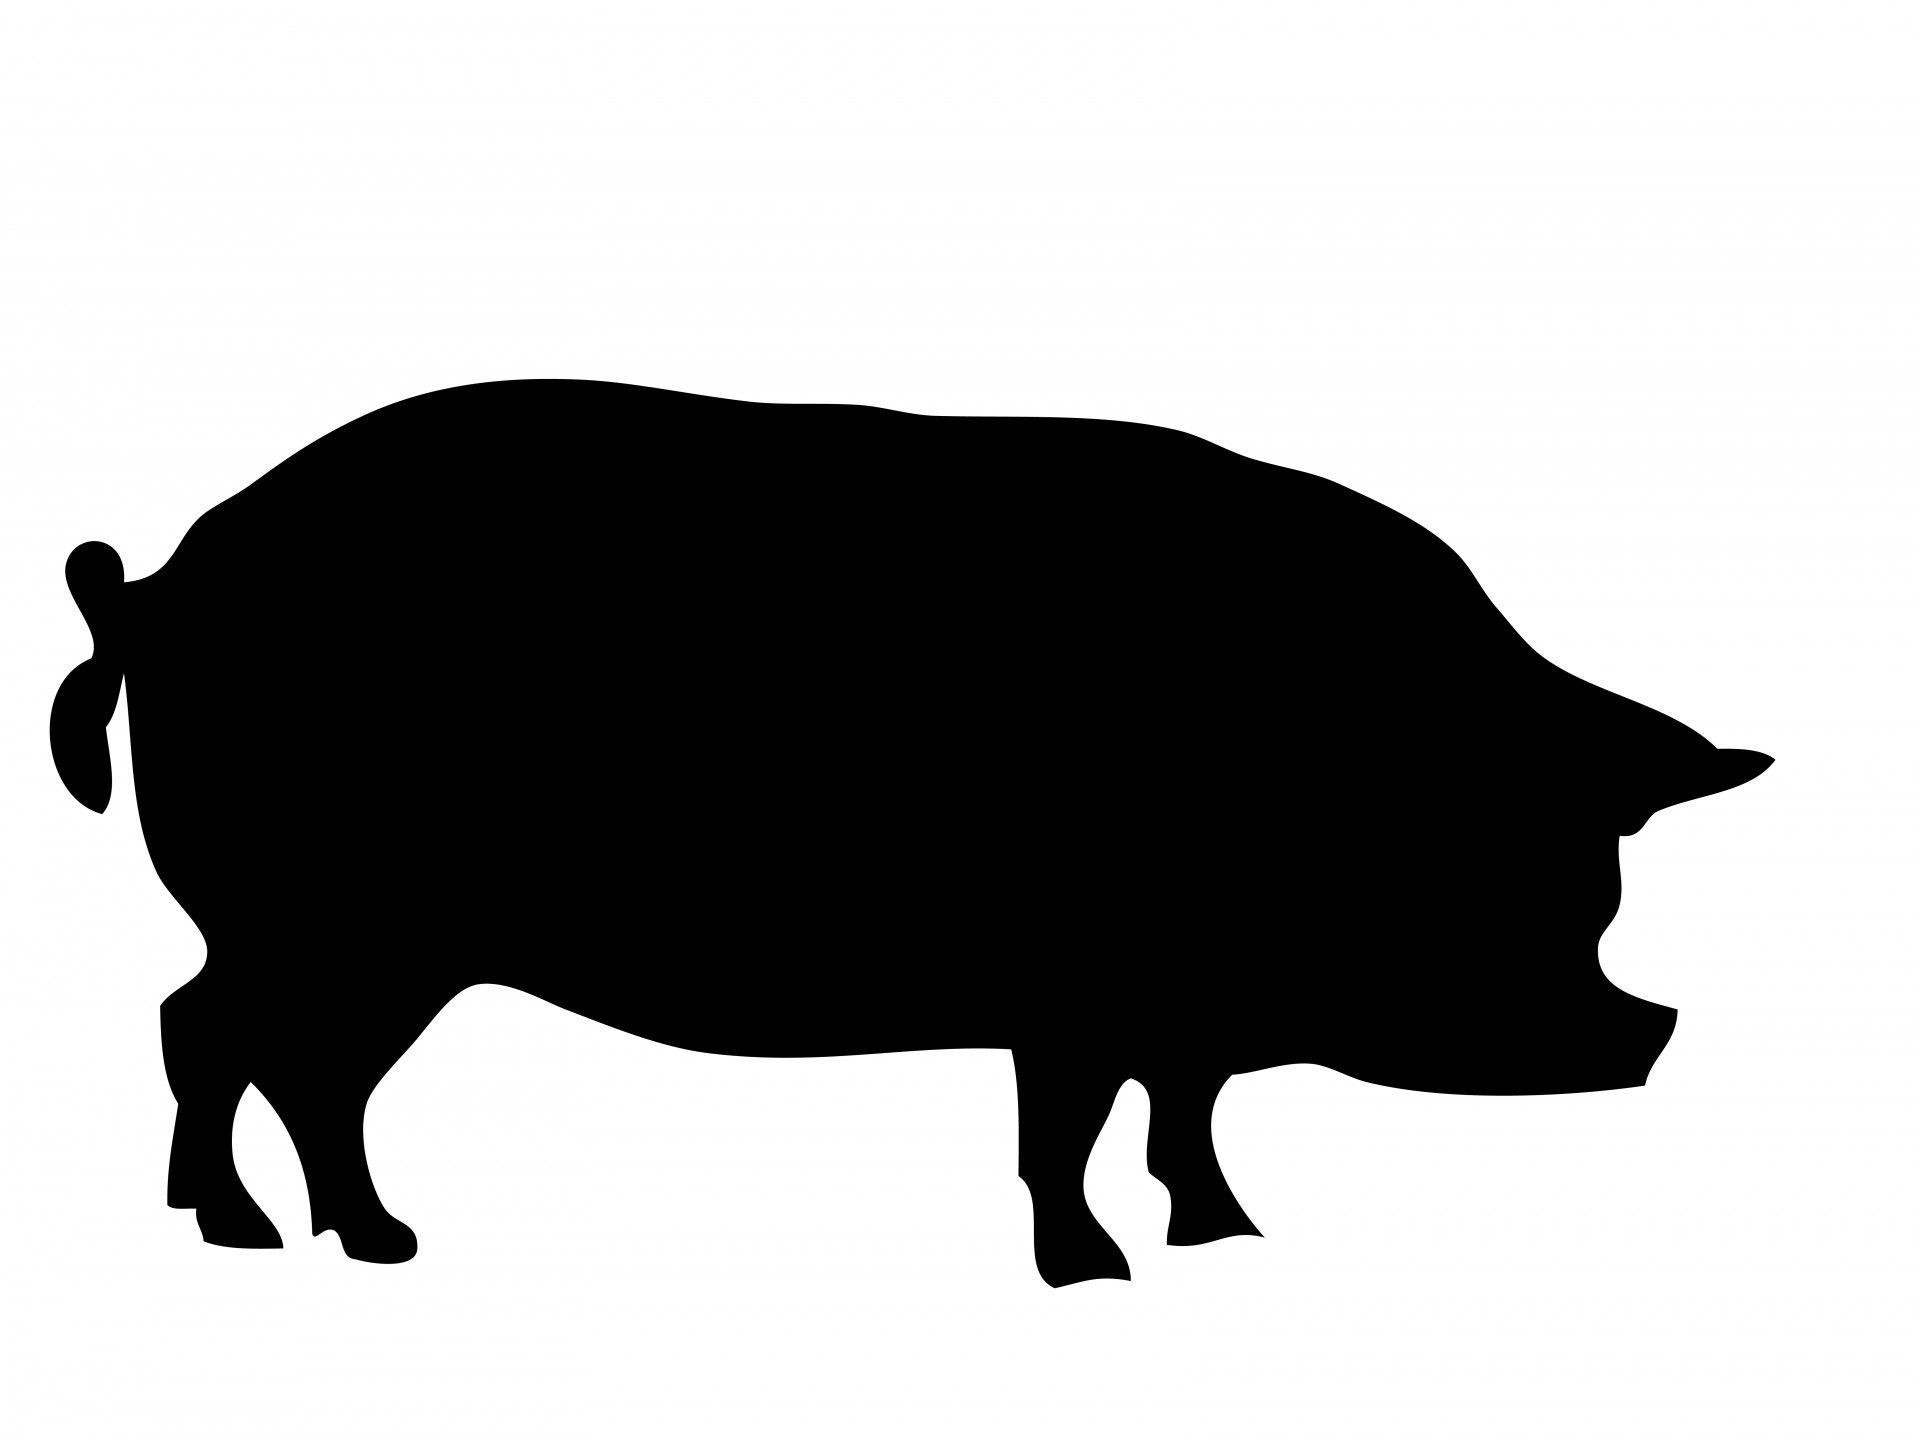 1920x1437 Pig Silhouette Free Stock Photo